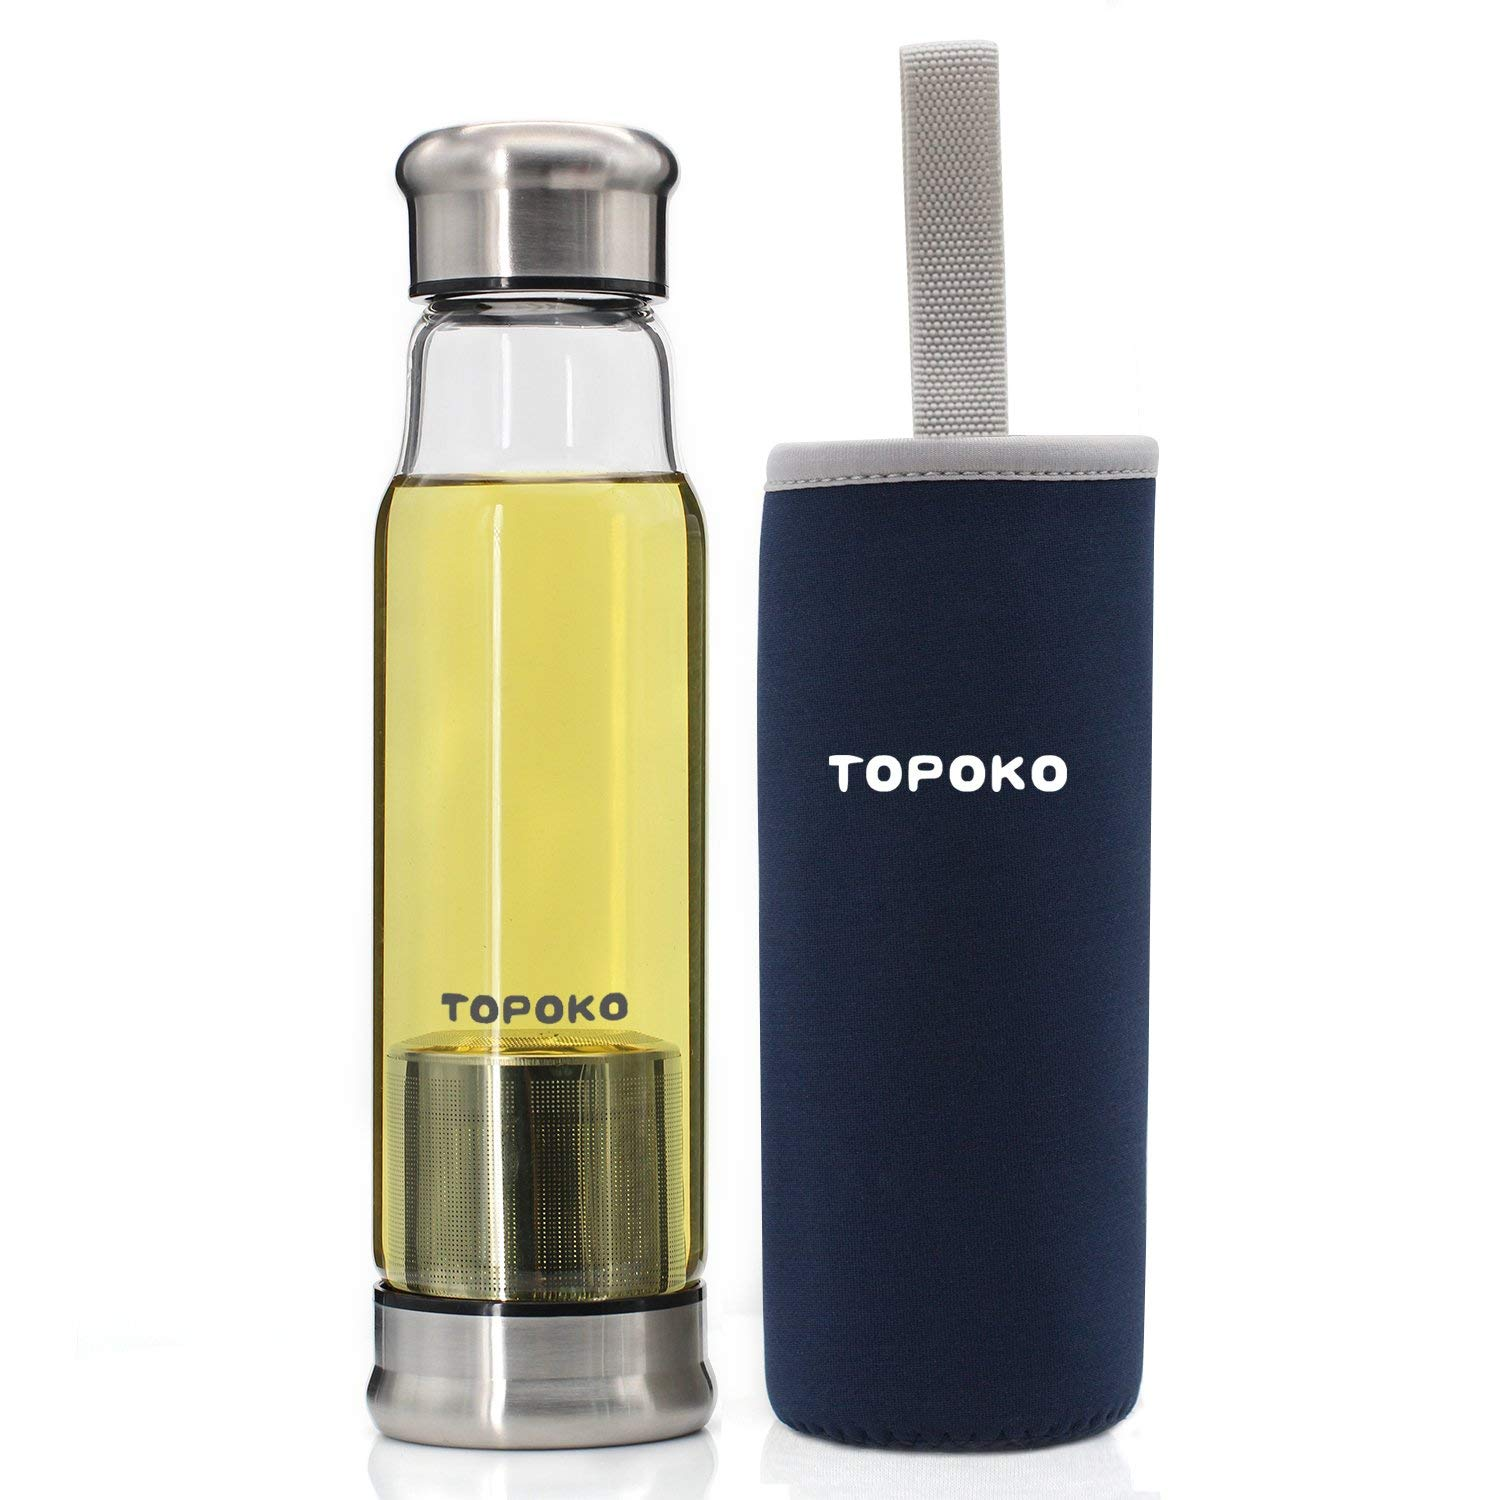 TOPOKO Stylish Handmade 18.5 Ounce Glass Water Bottle-Extra Strong Crystal Glass Bottle Bpa-Free, Lead-Free With Handmade Handle Sleeve-Blue Sleeve+Infuser